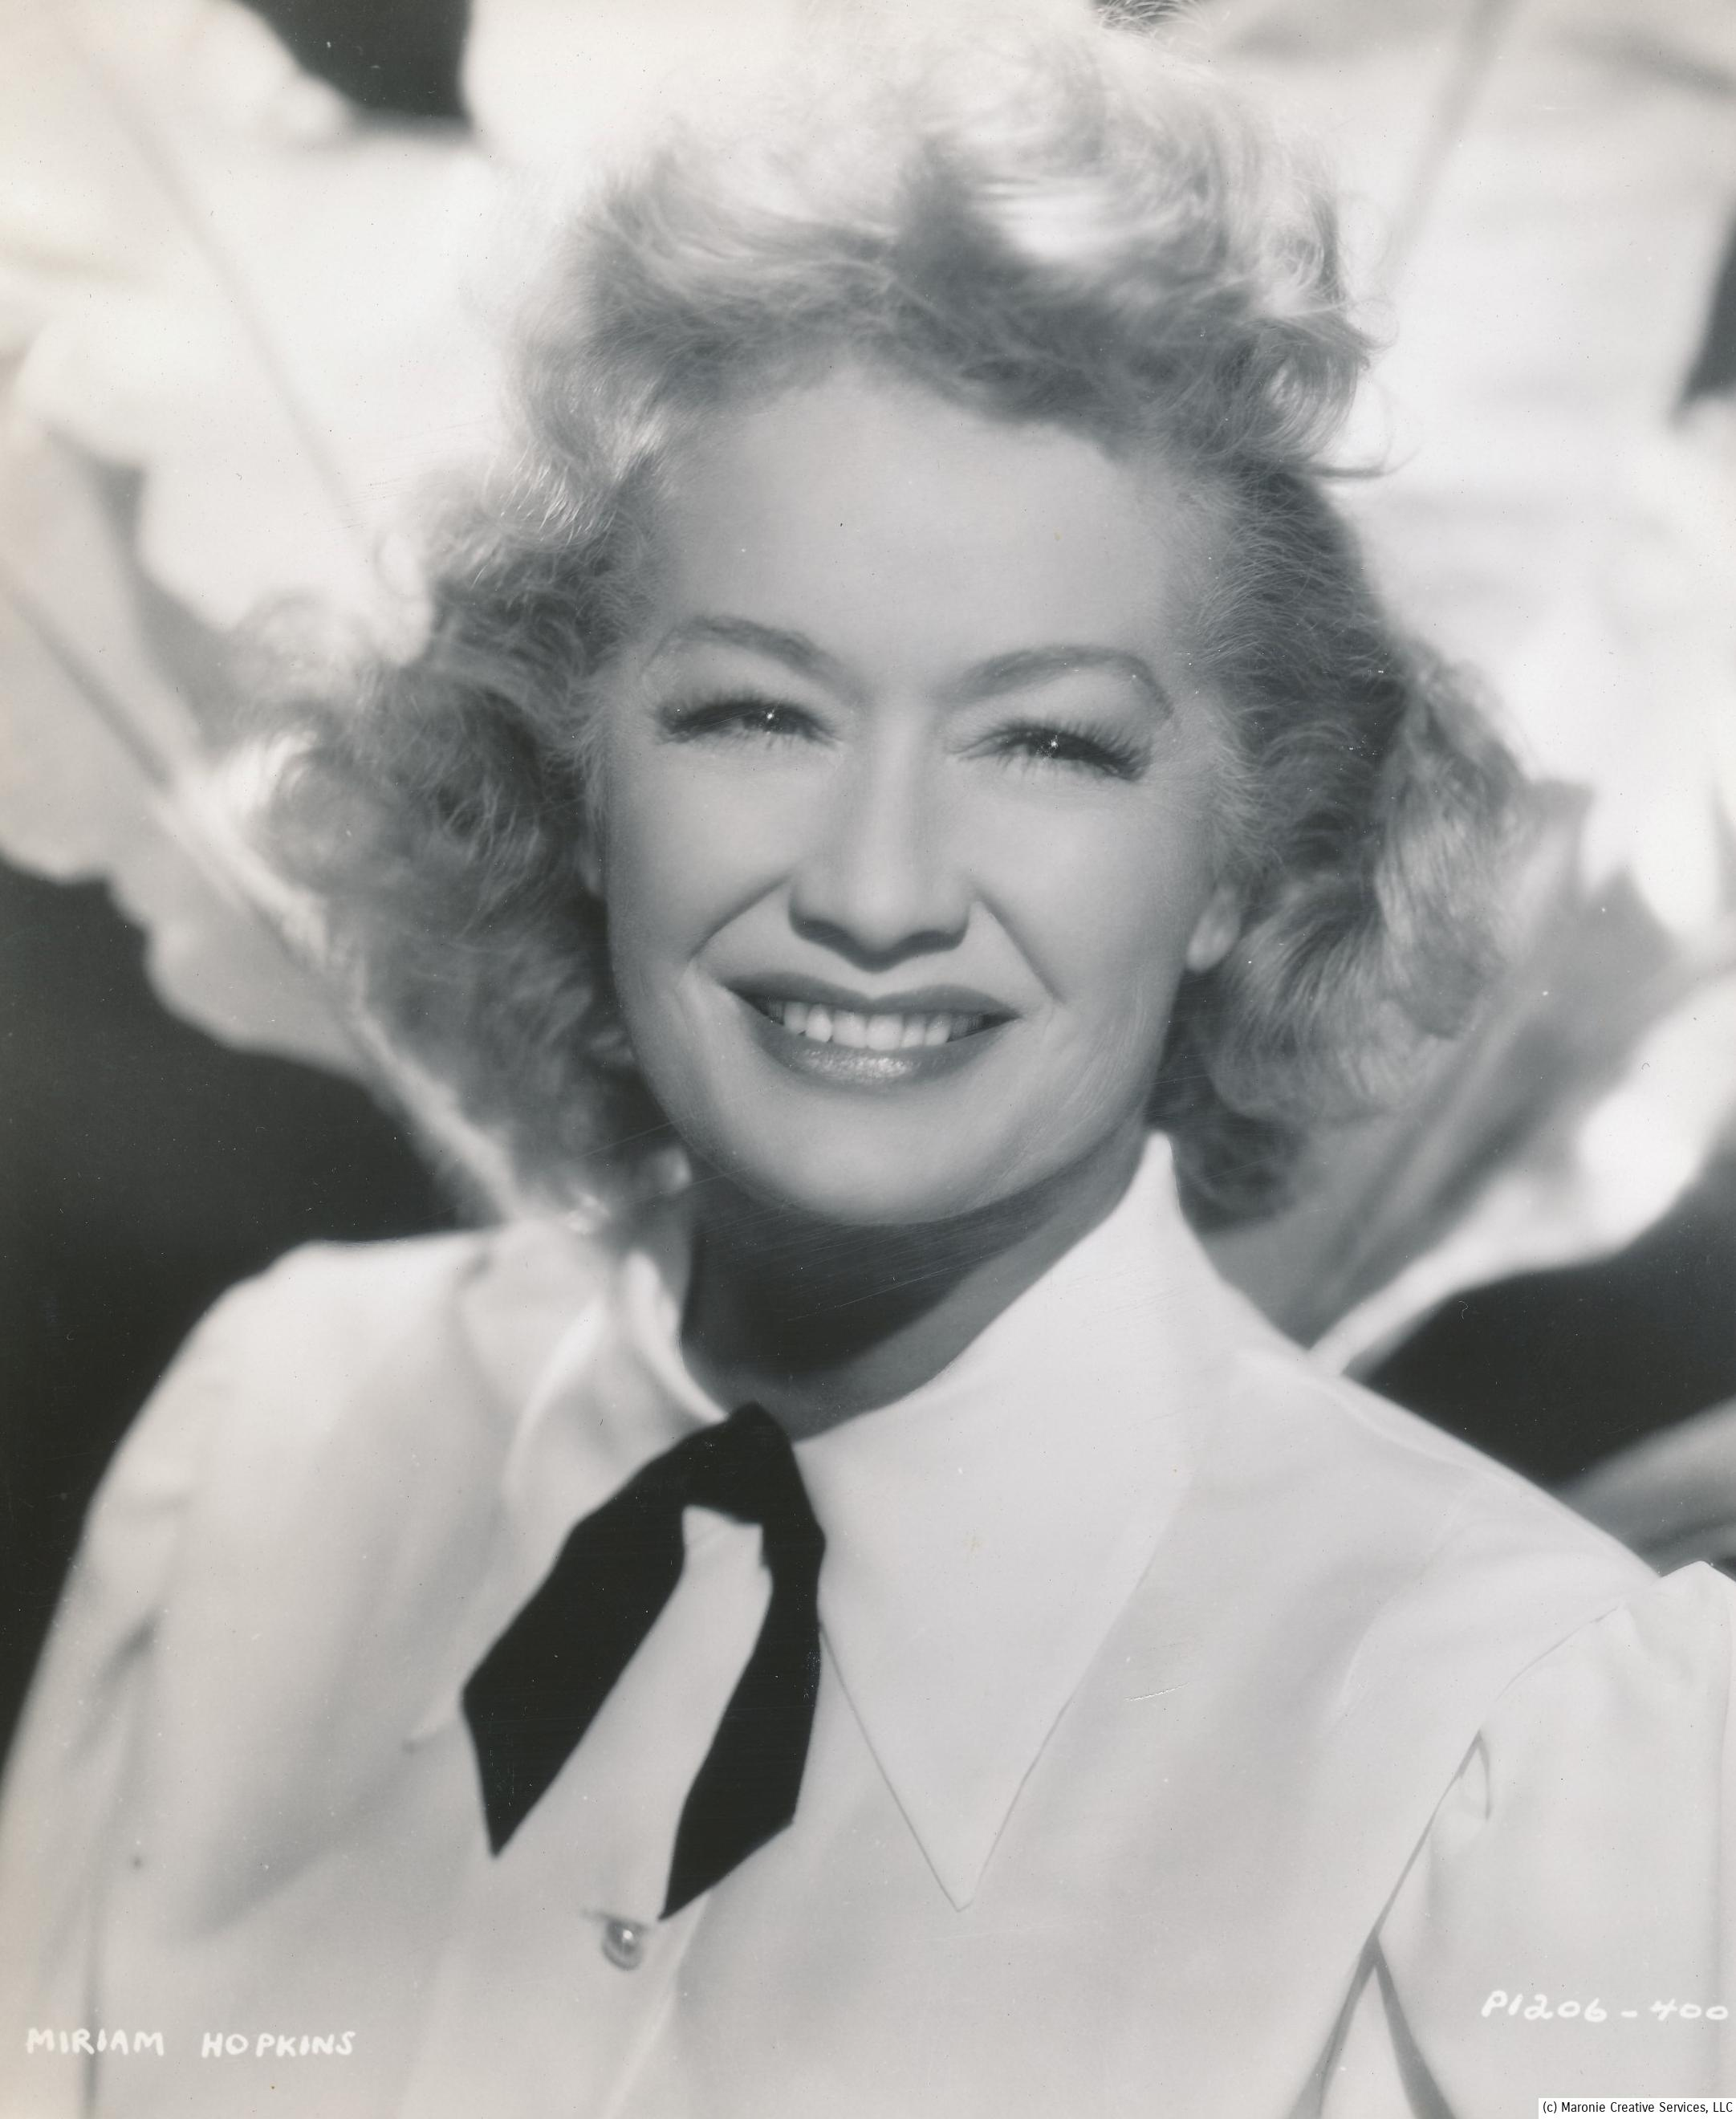 MIRIAM HOPKINS - Sam Maronies Entertainment Funhouse ...